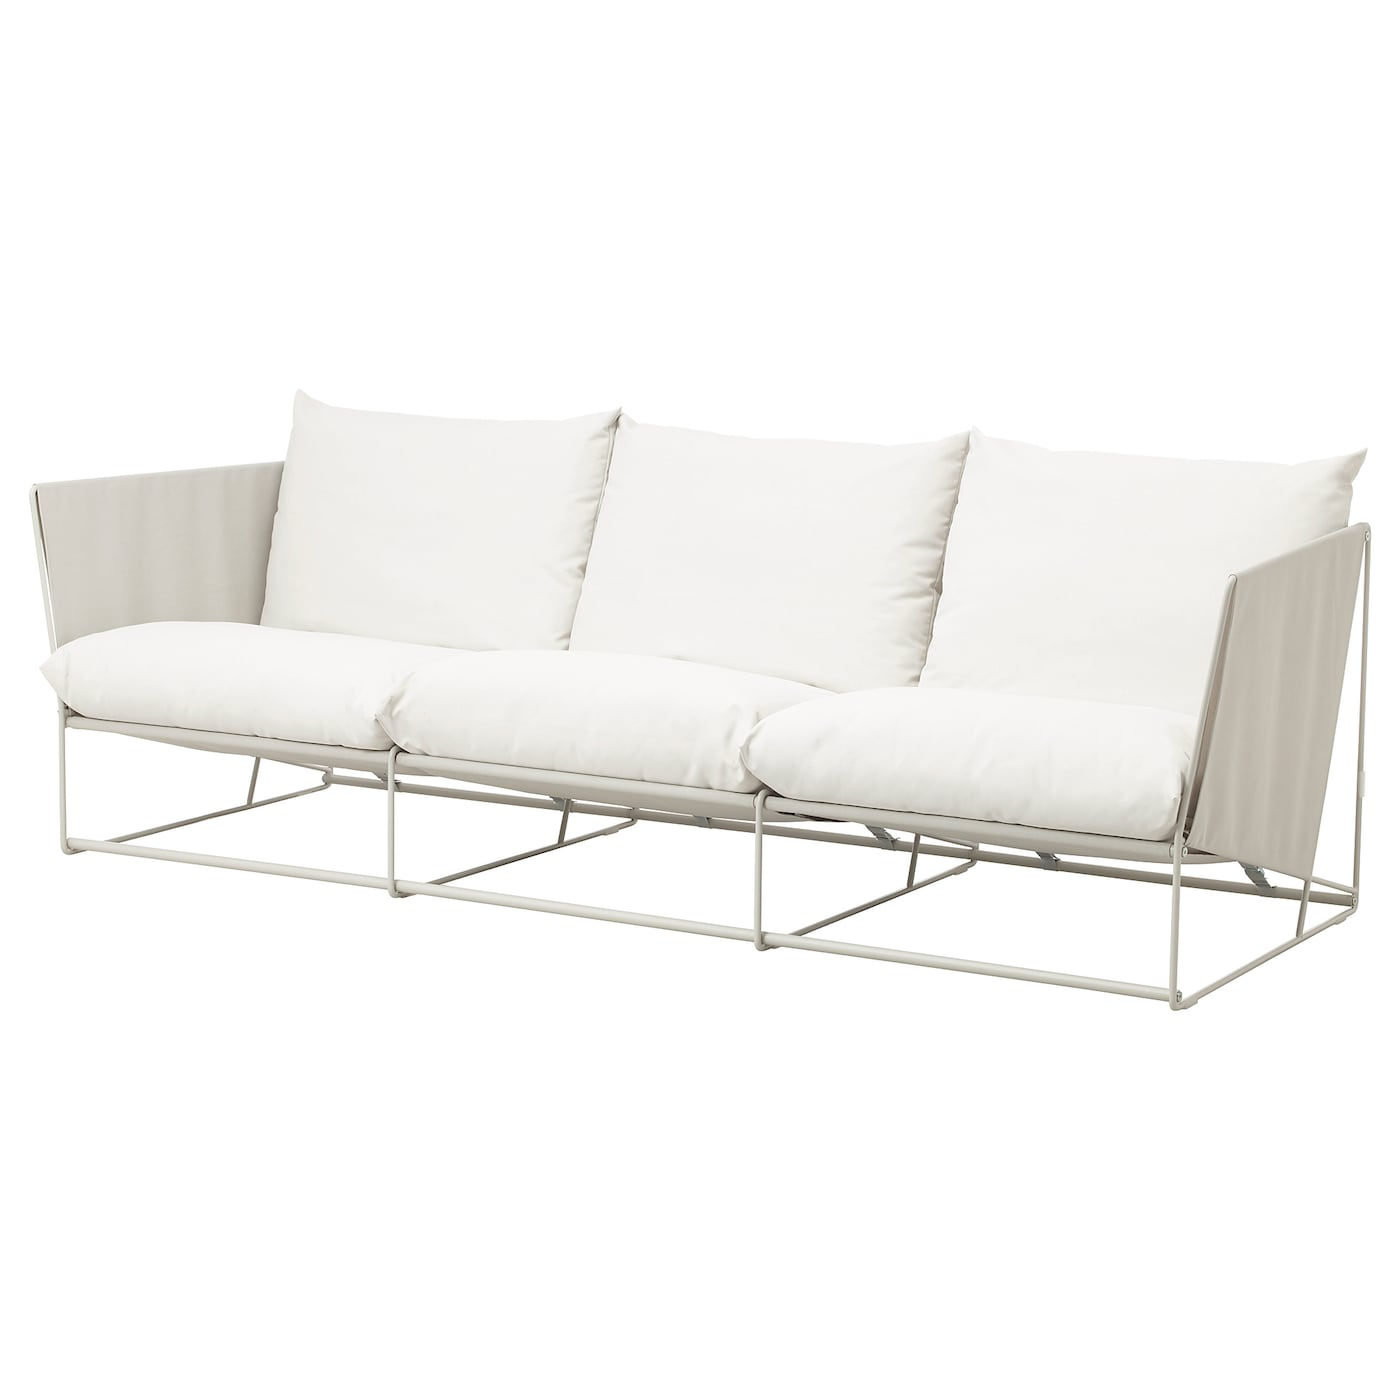 IKEA HAVSTEN canapé 3 places, int/ext